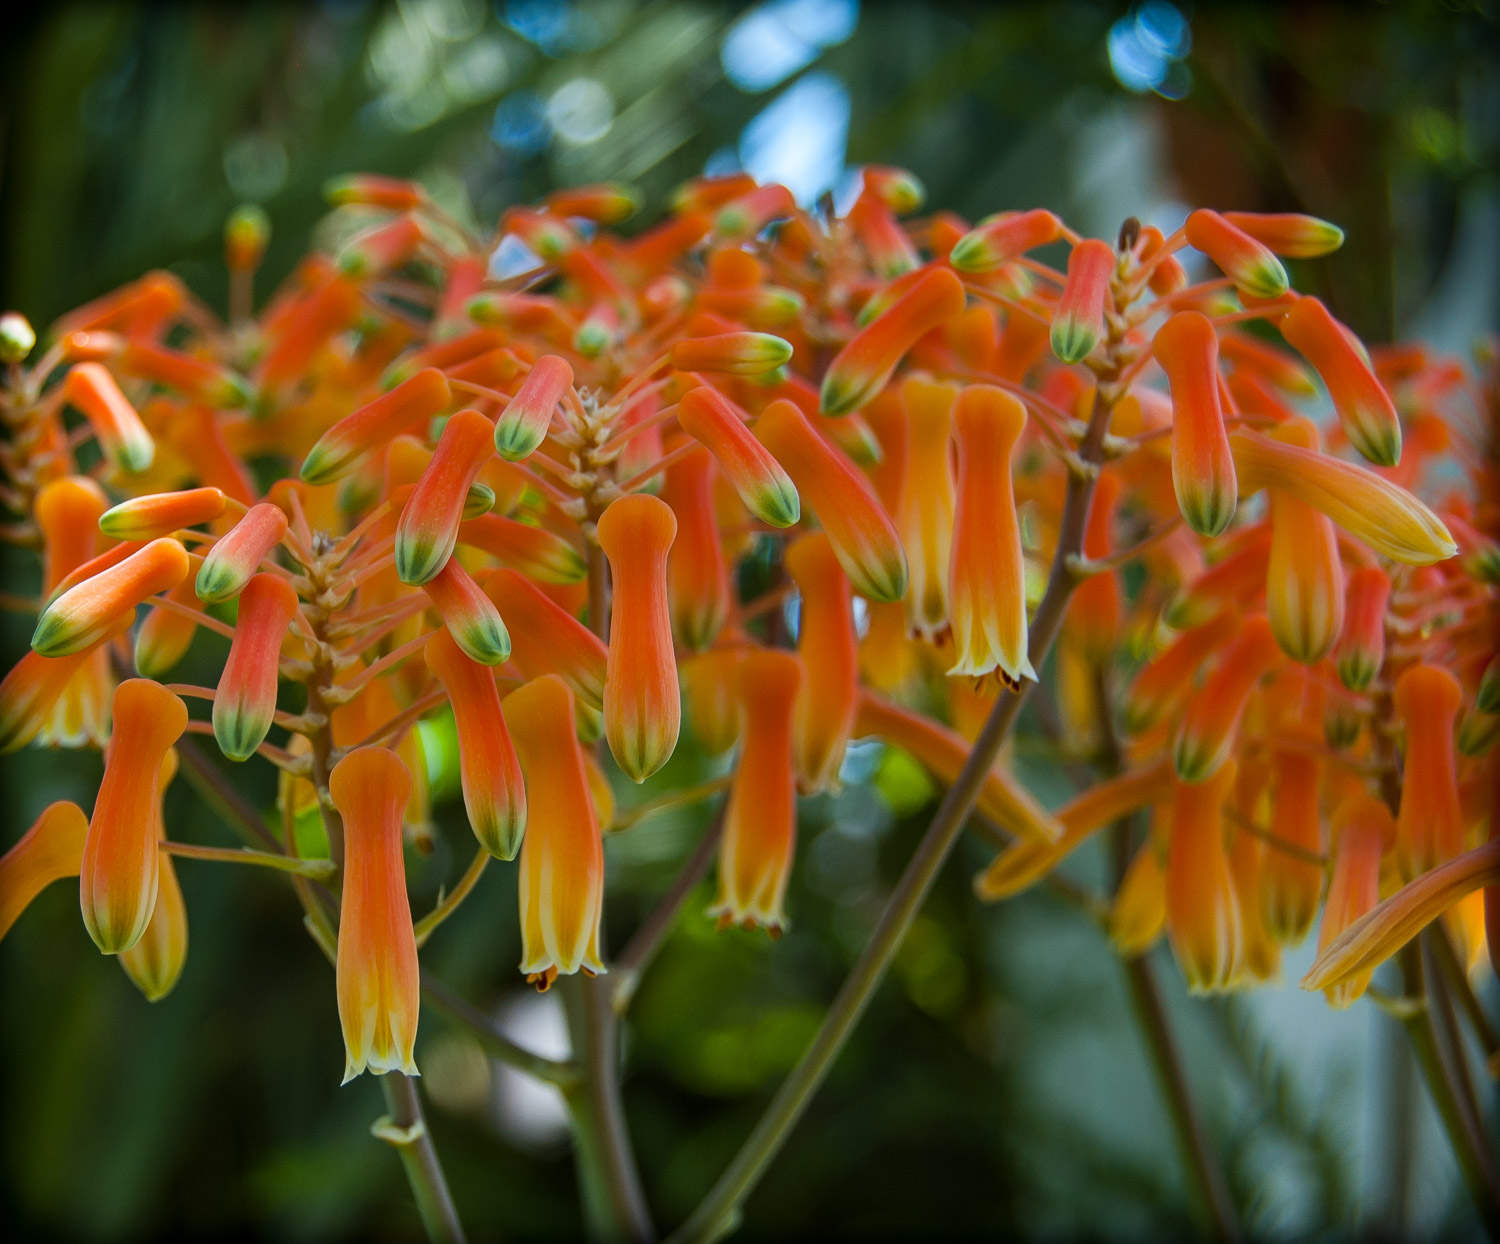 Flowers of Aloe saponaria